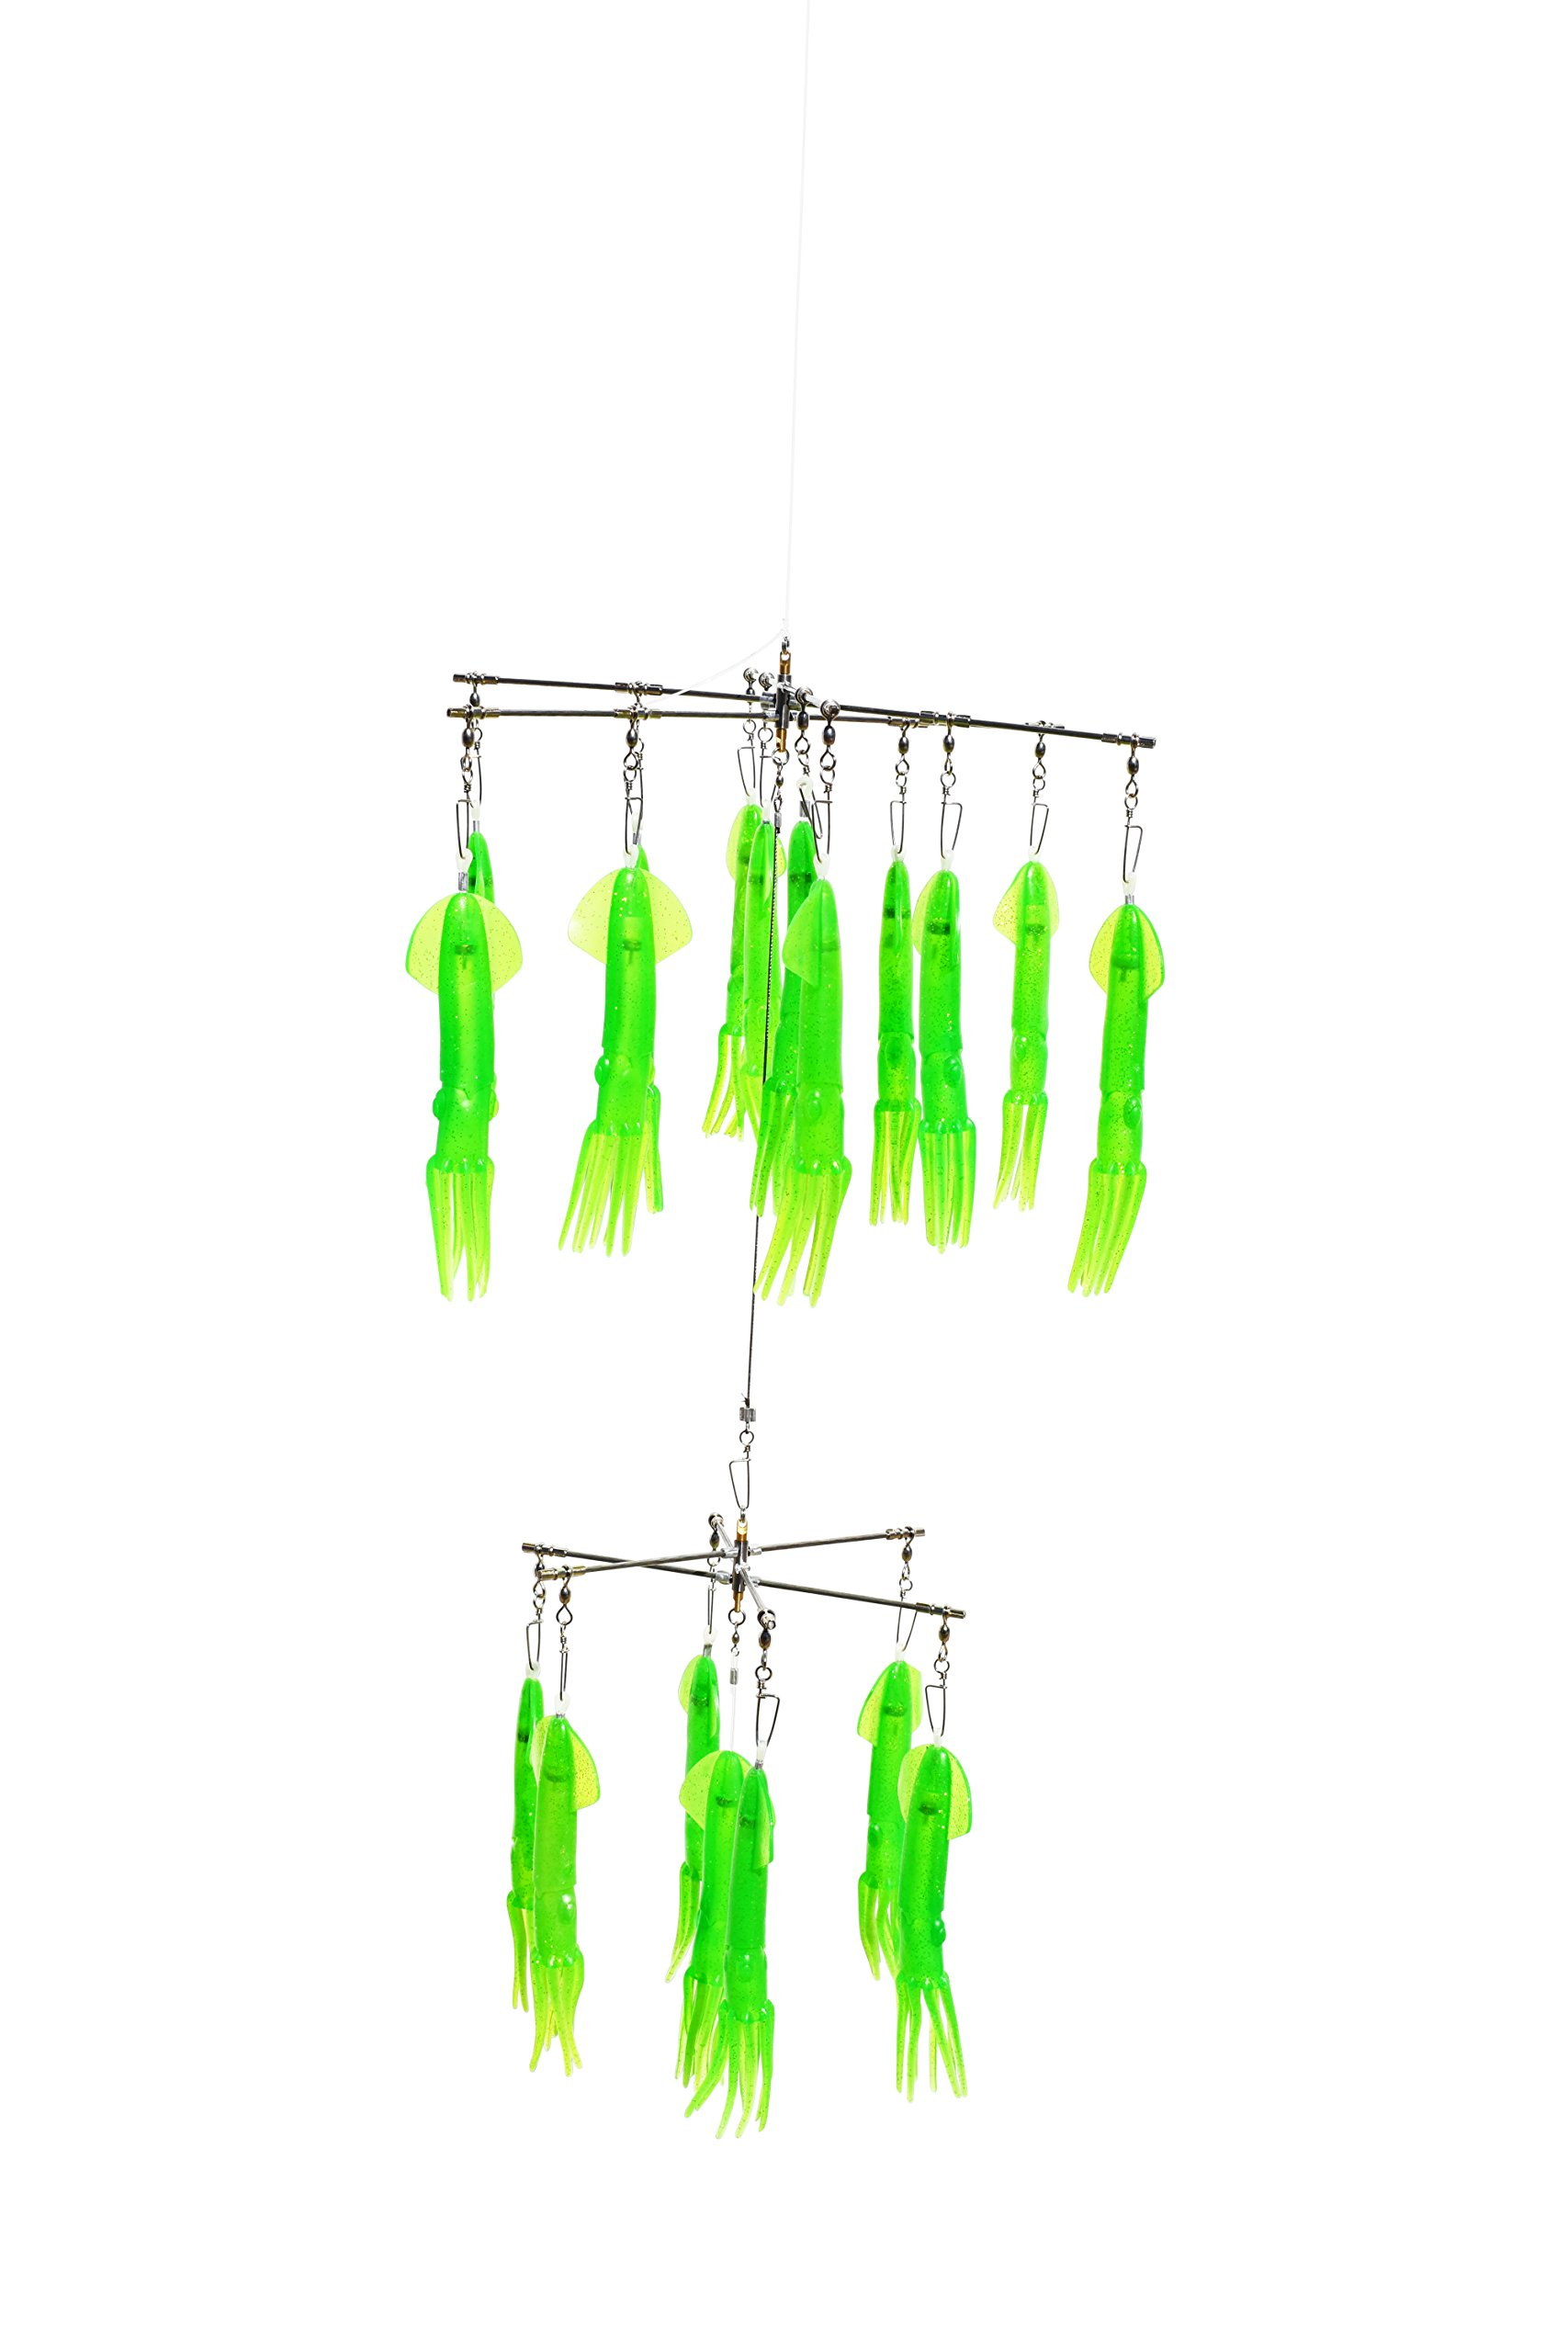 Marlin Darlin Double Squid Dredge with 19 Green Squid by EAT MY TACKLE